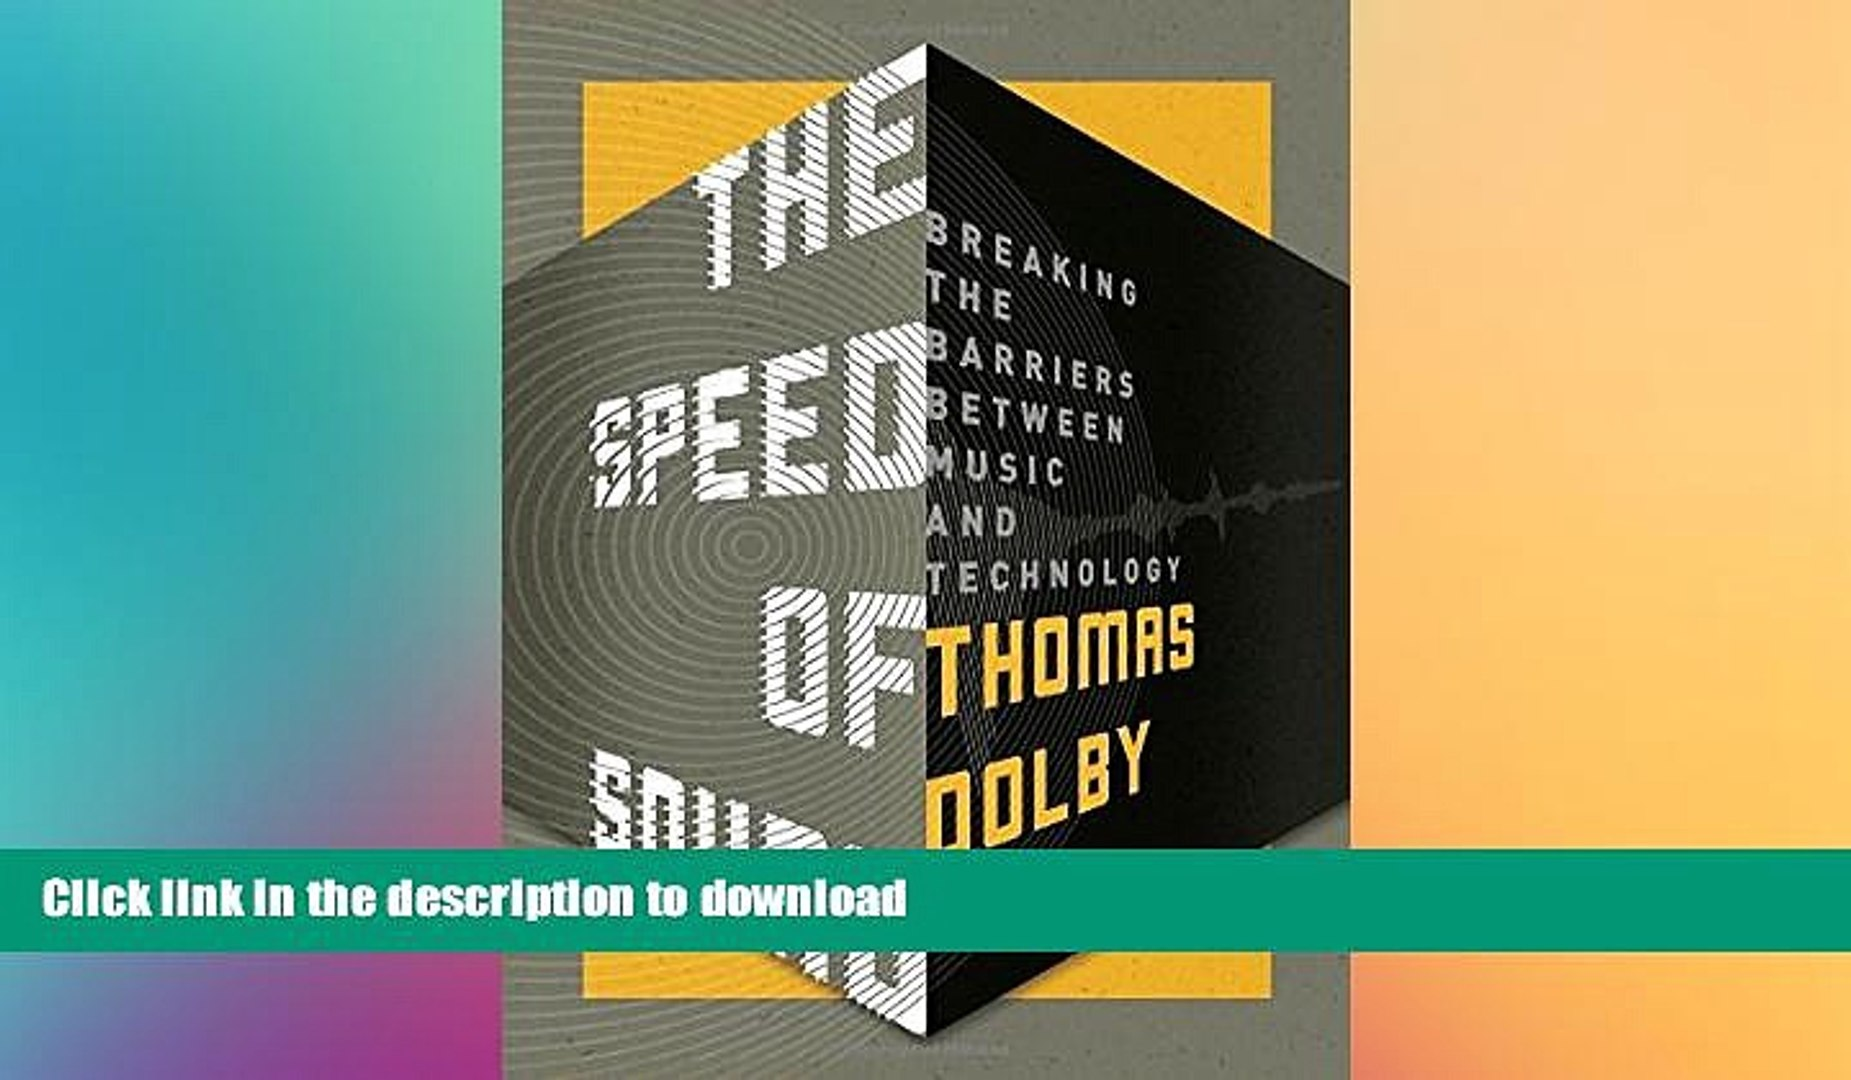 FAVORITE BOOK  The Speed of Sound: Breaking the Barriers Between Music and Technology: A Memoir